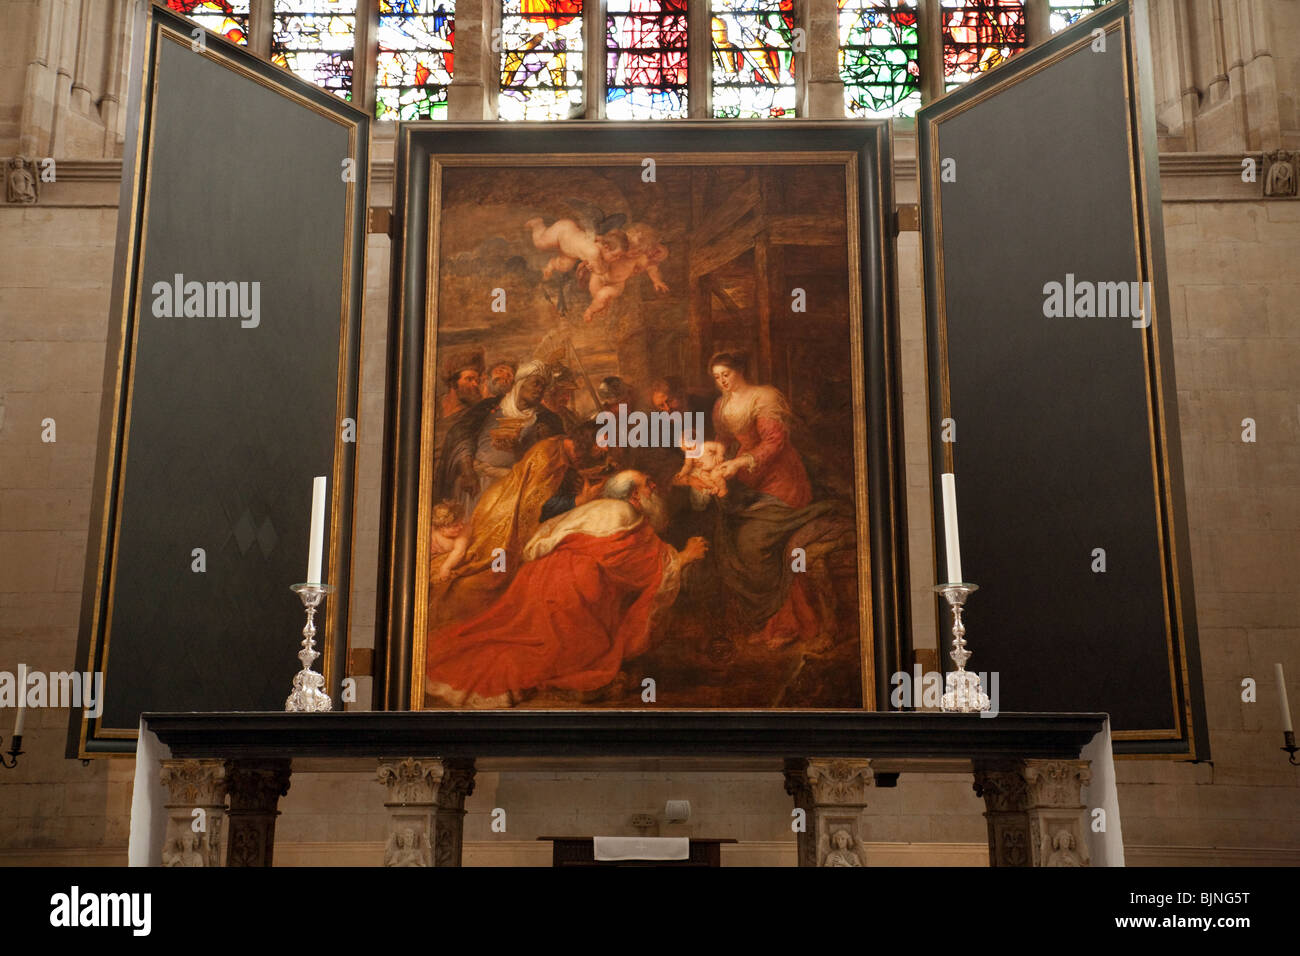 Rubens painting, The Adoration of the Magi (1634) in Kings College chapel,  Cambridge University, UK